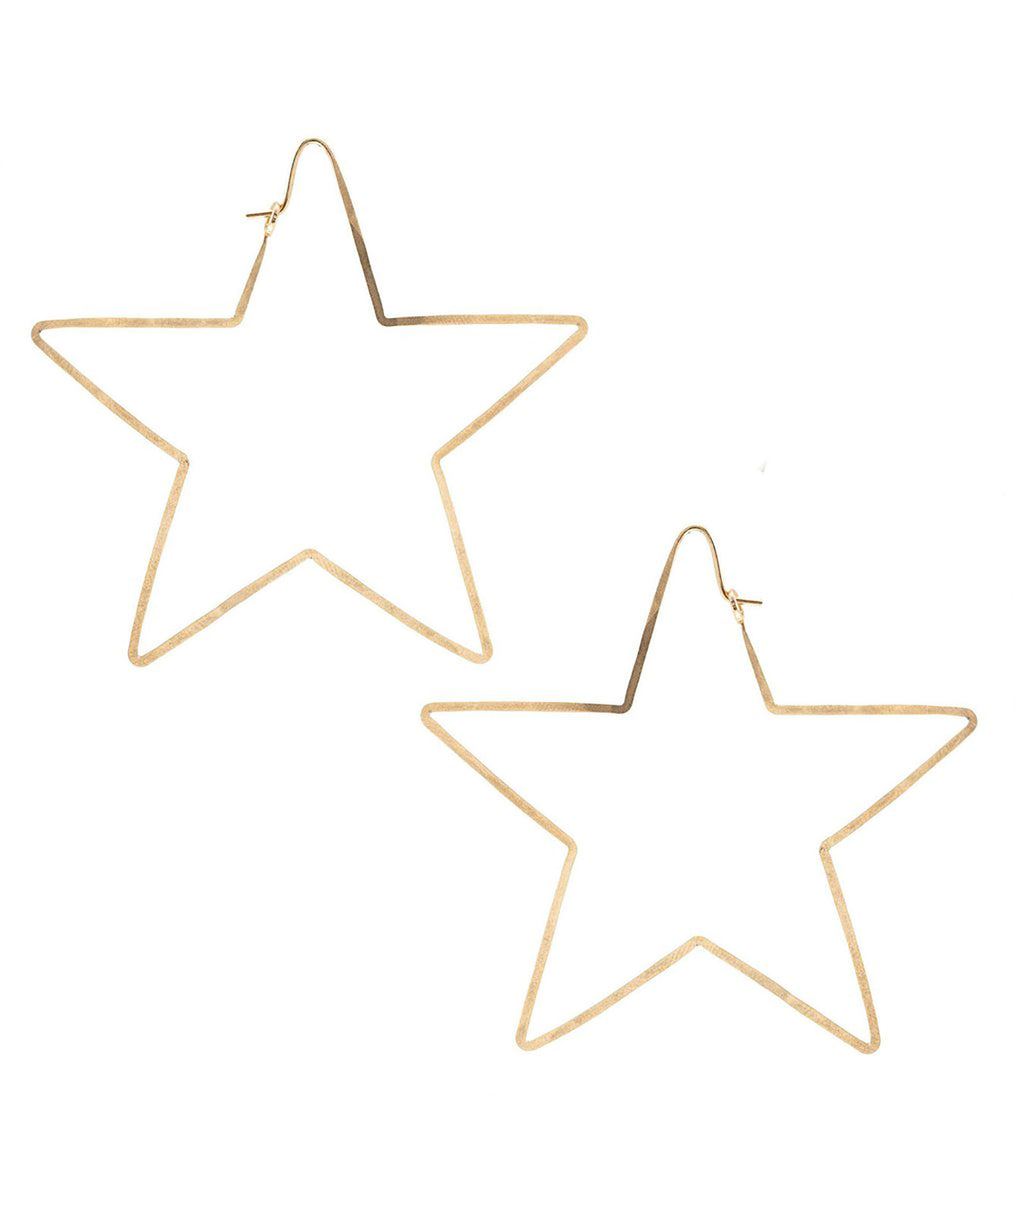 Kris Nations Earrings Hammered Hoop Star Gold